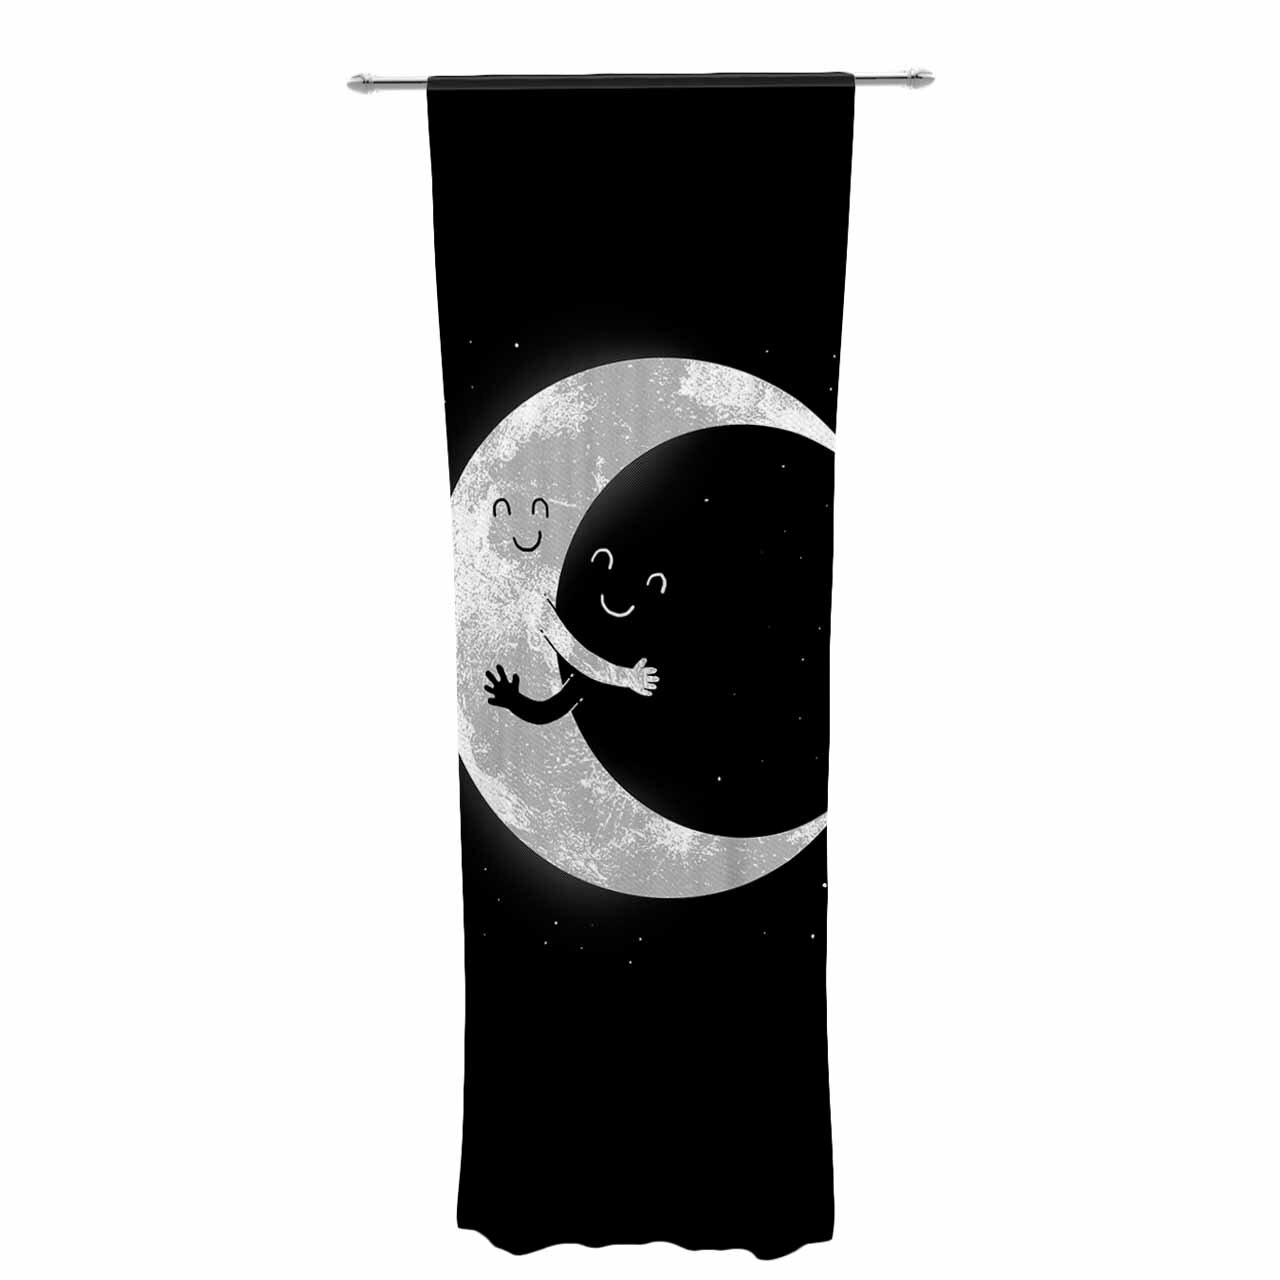 East Urban Home Digital Carbine Moon Hug Decorative Graphic Print